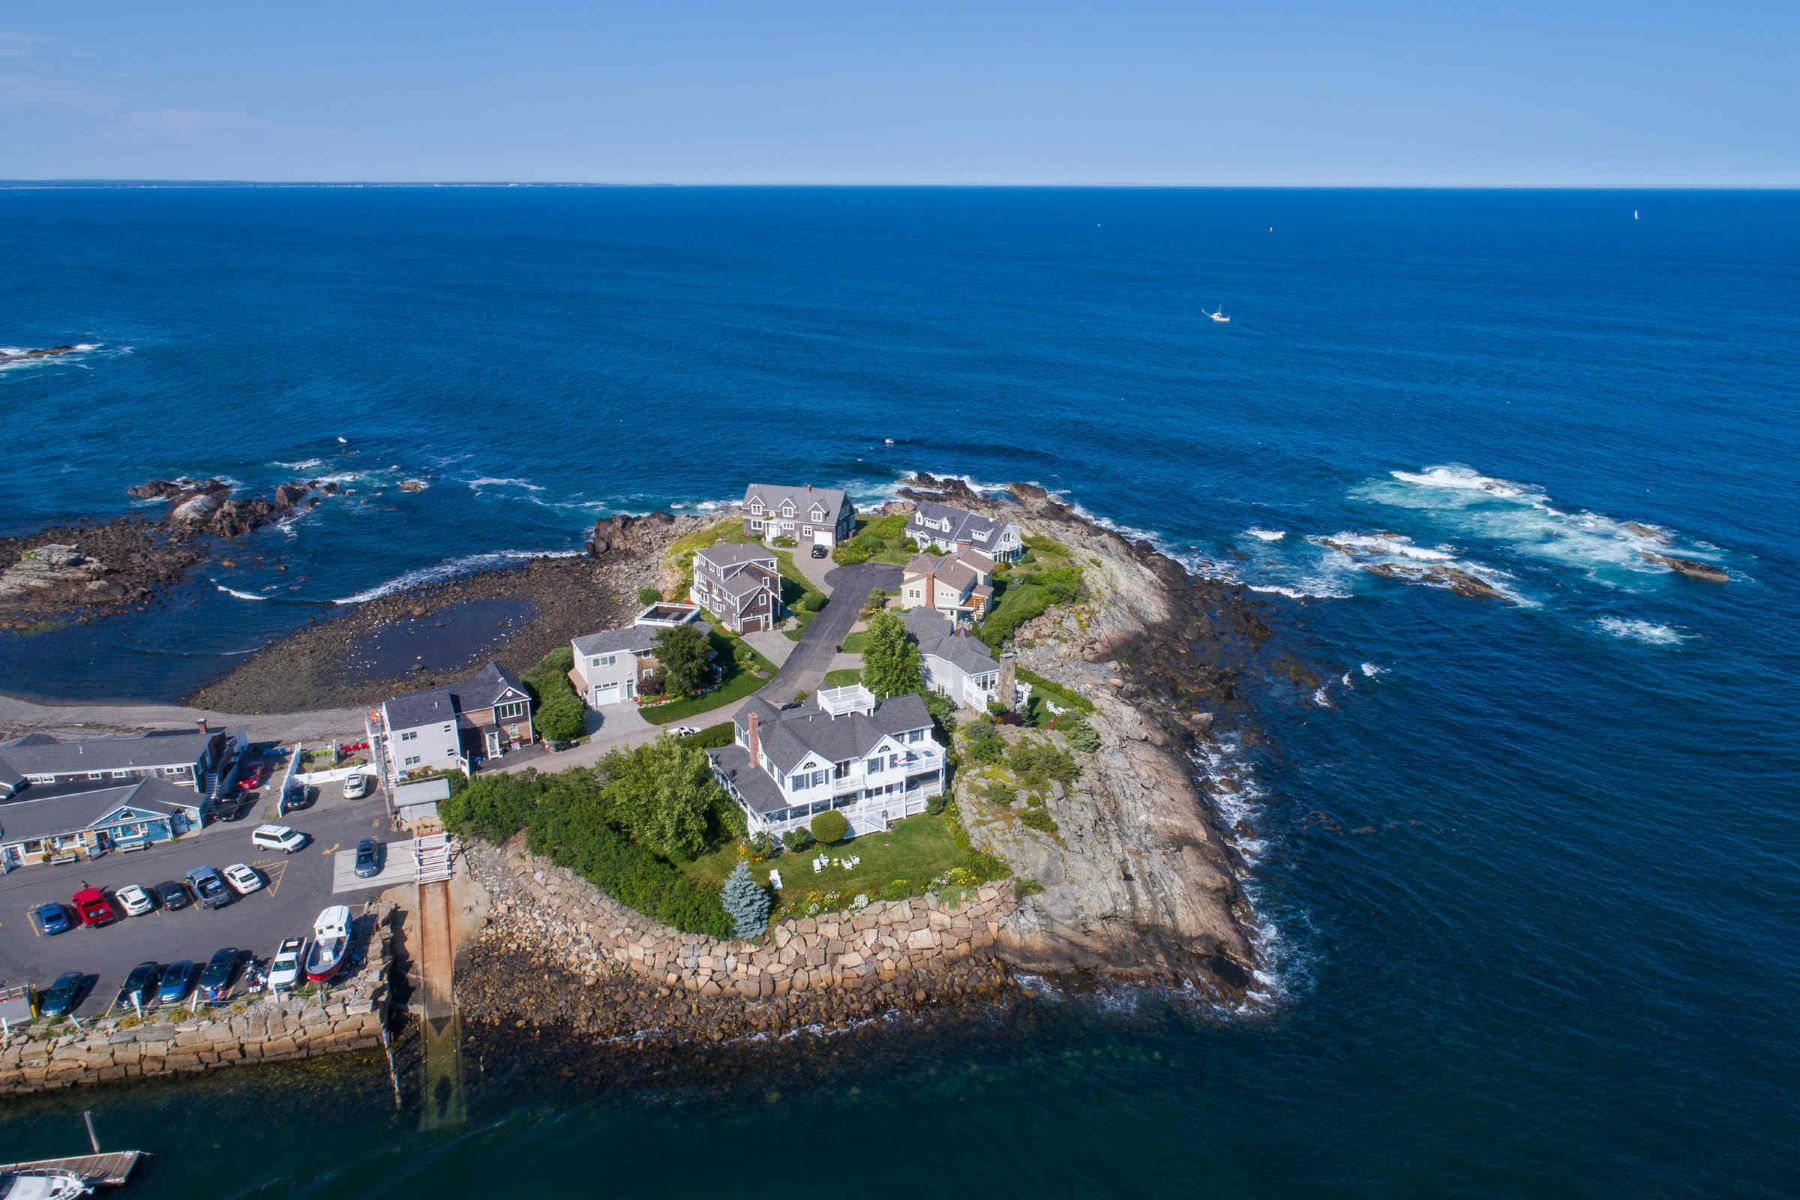 Single Family Homes for Sale at Classic Waterfront Residence in Perkins Cove 12 Harbor Lane, Ogunquit, Maine 03907 United States